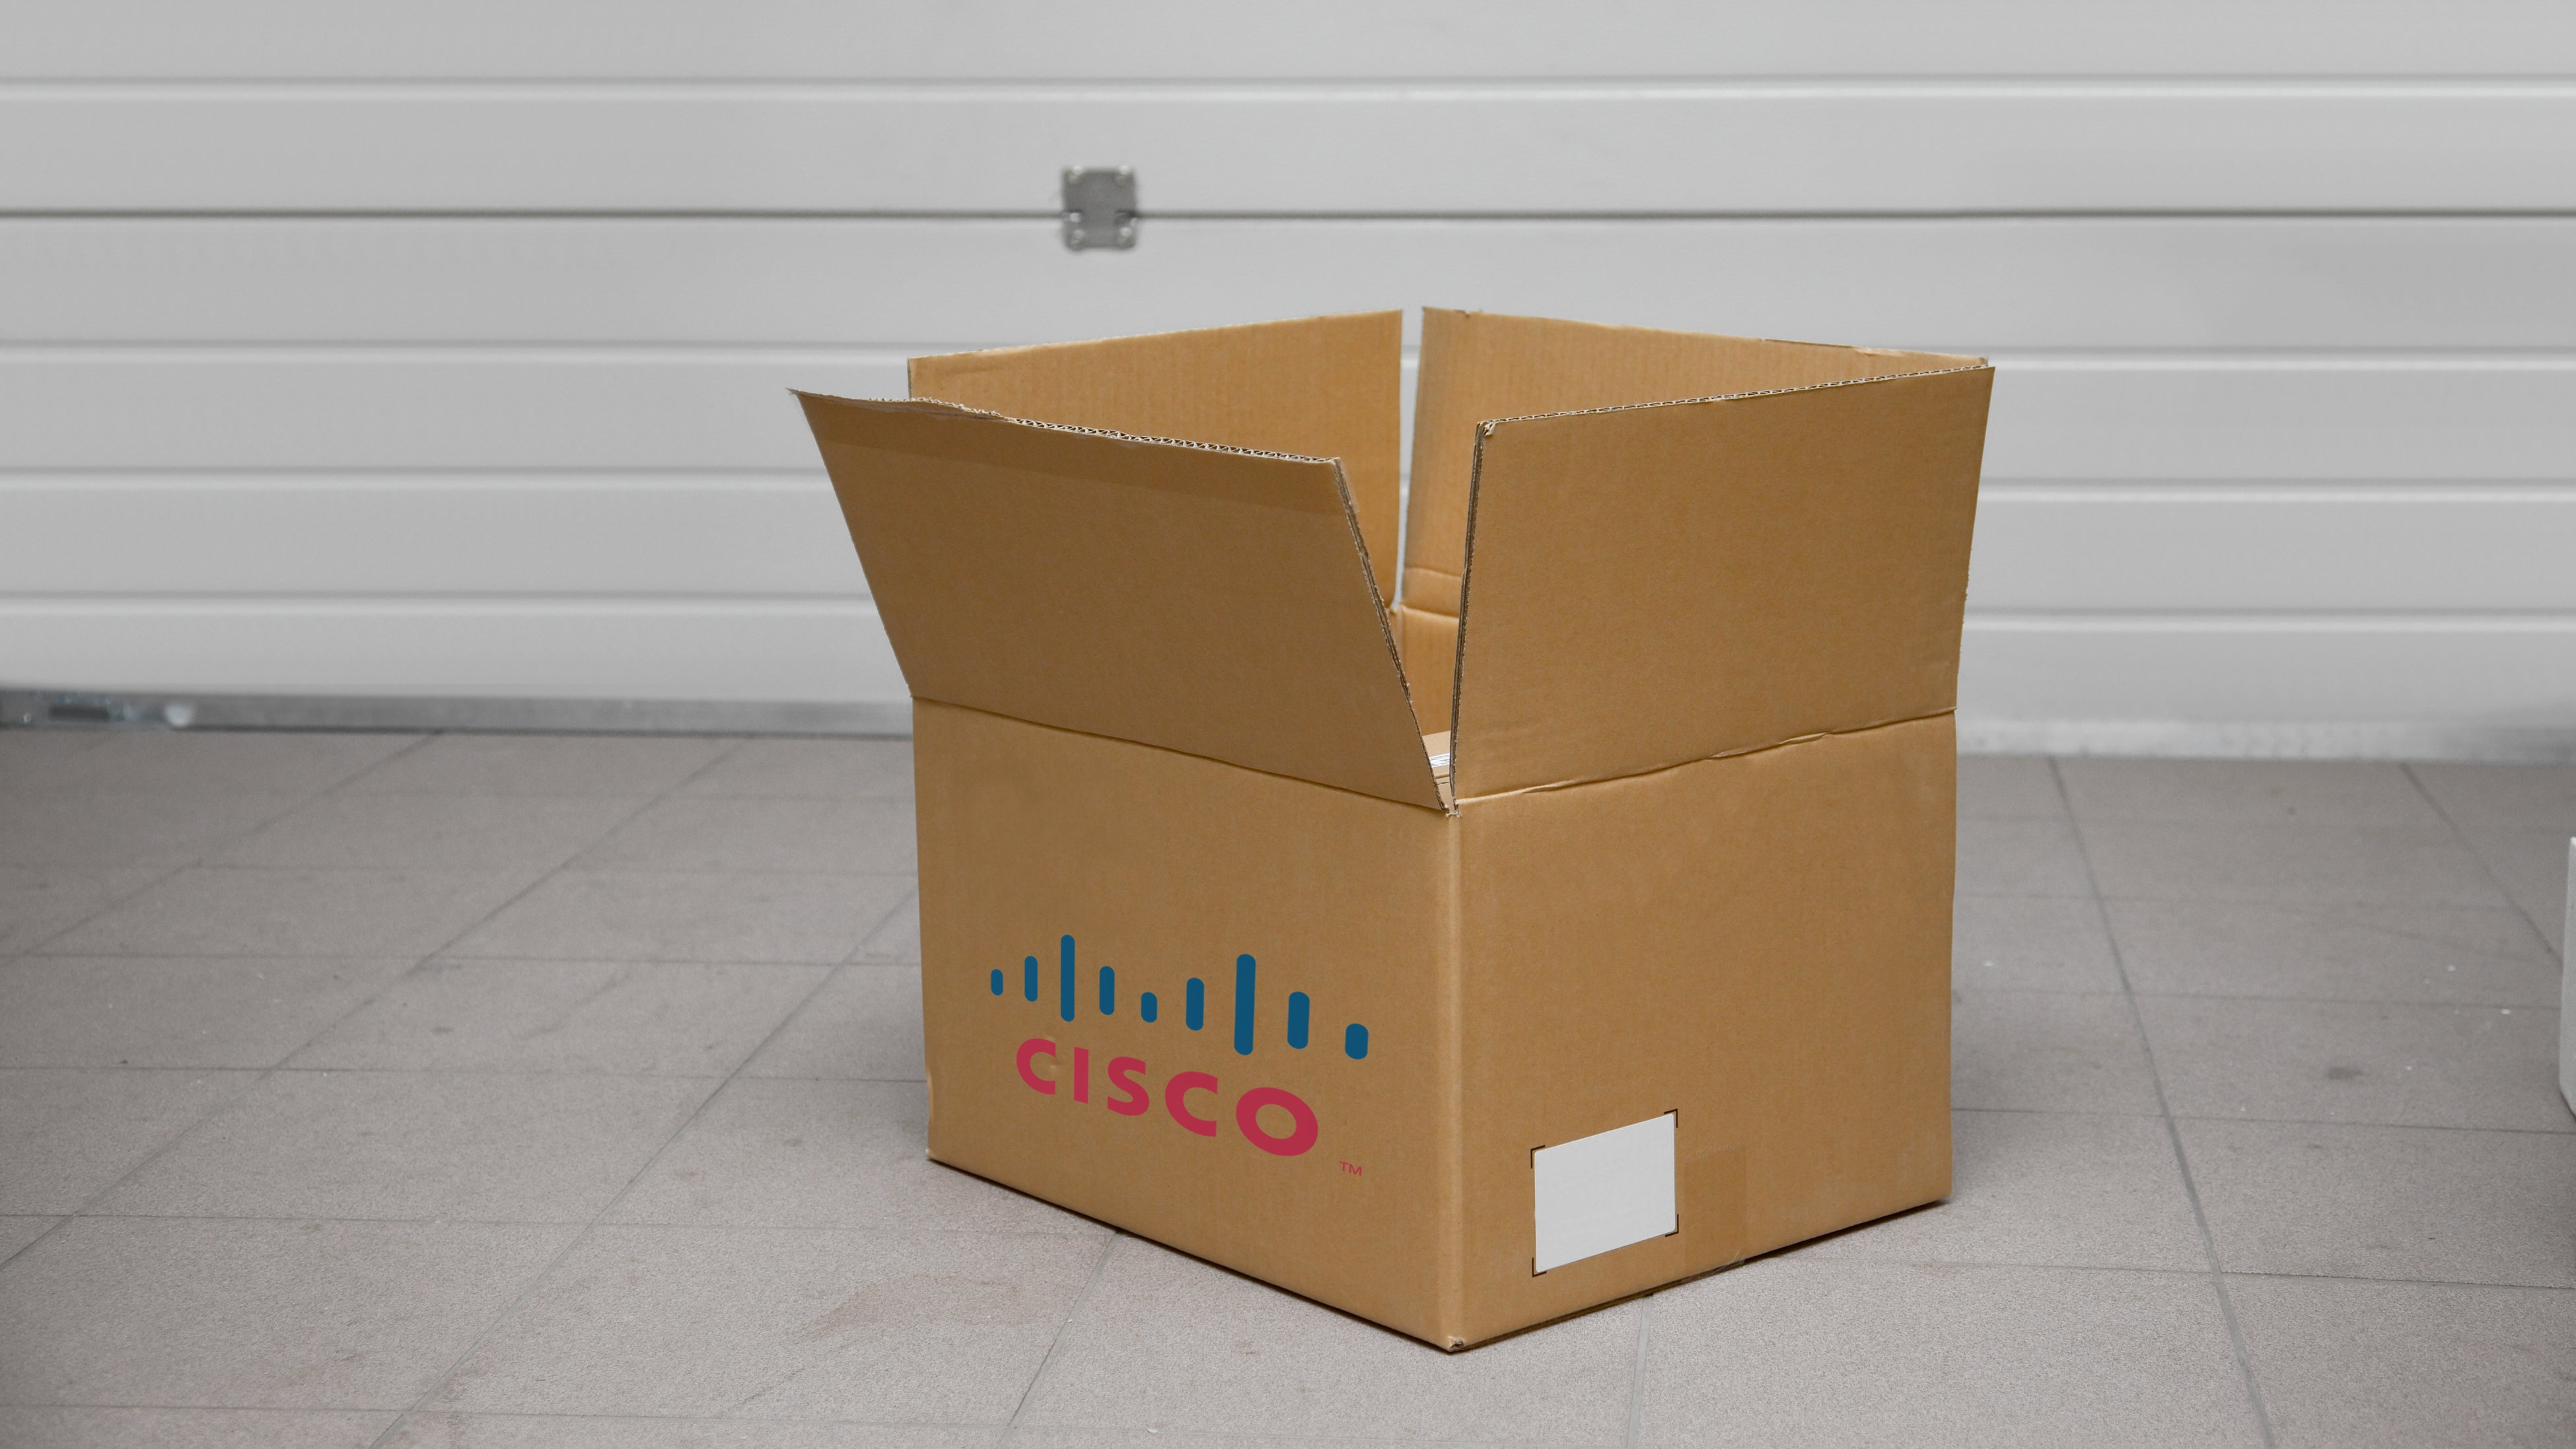 Cisco's Going to Ship Its Equipment to Empty Houses to Dodge the NSA